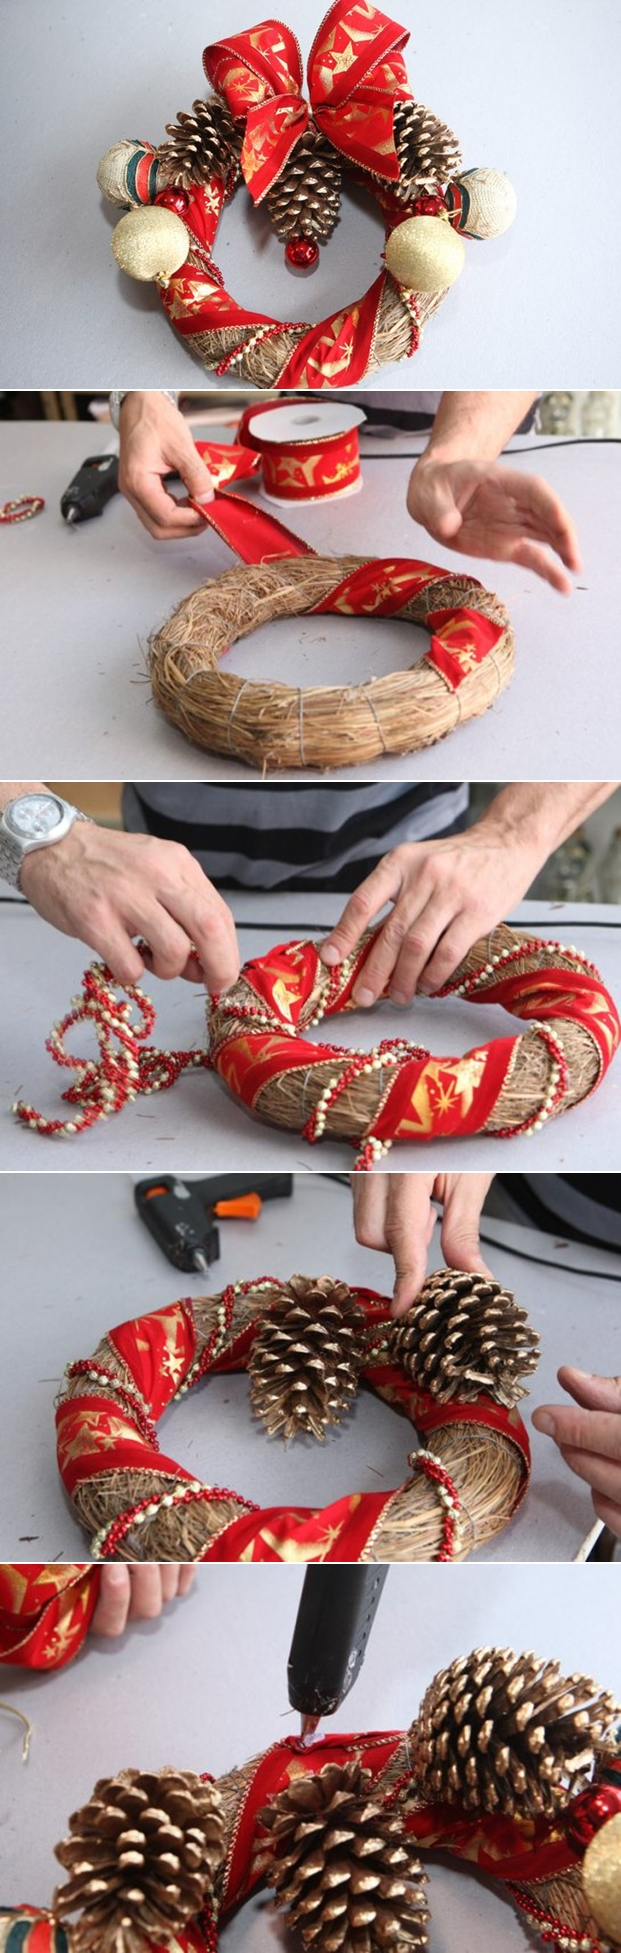 diy-christmas-wreath-tutorial-ribbons-pine-cones